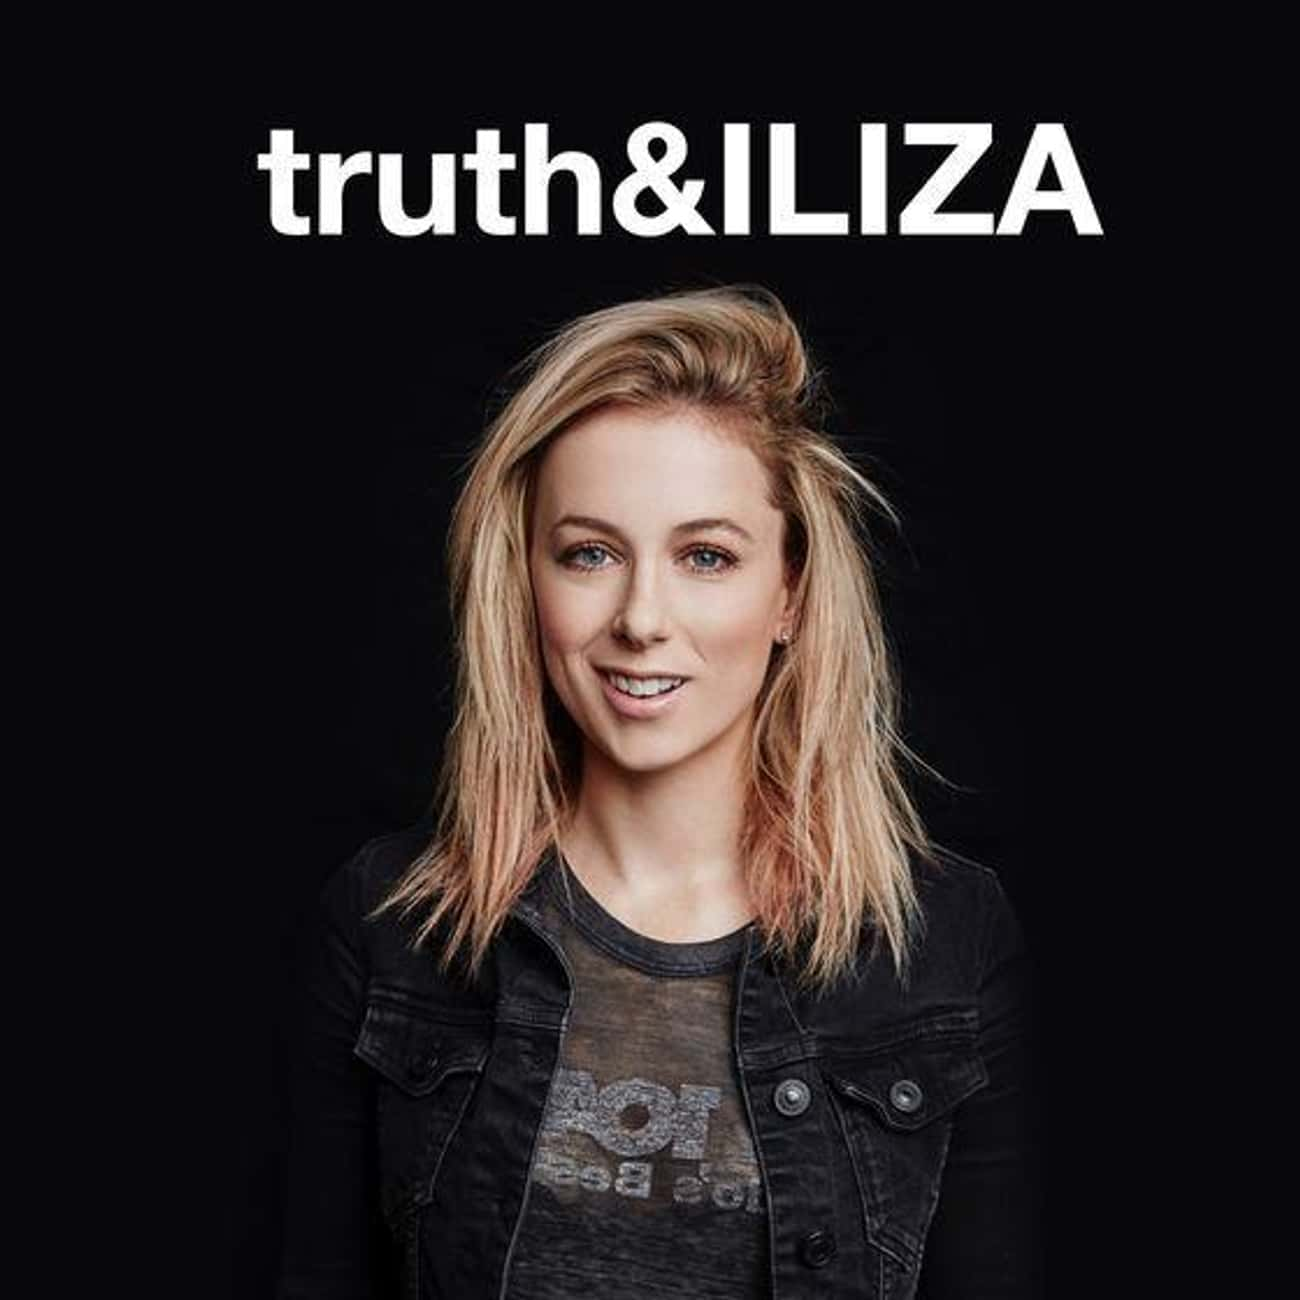 Truth & Iliza is listed (or ranked) 2 on the list The Best New Late Night Shows of the Last Few Years